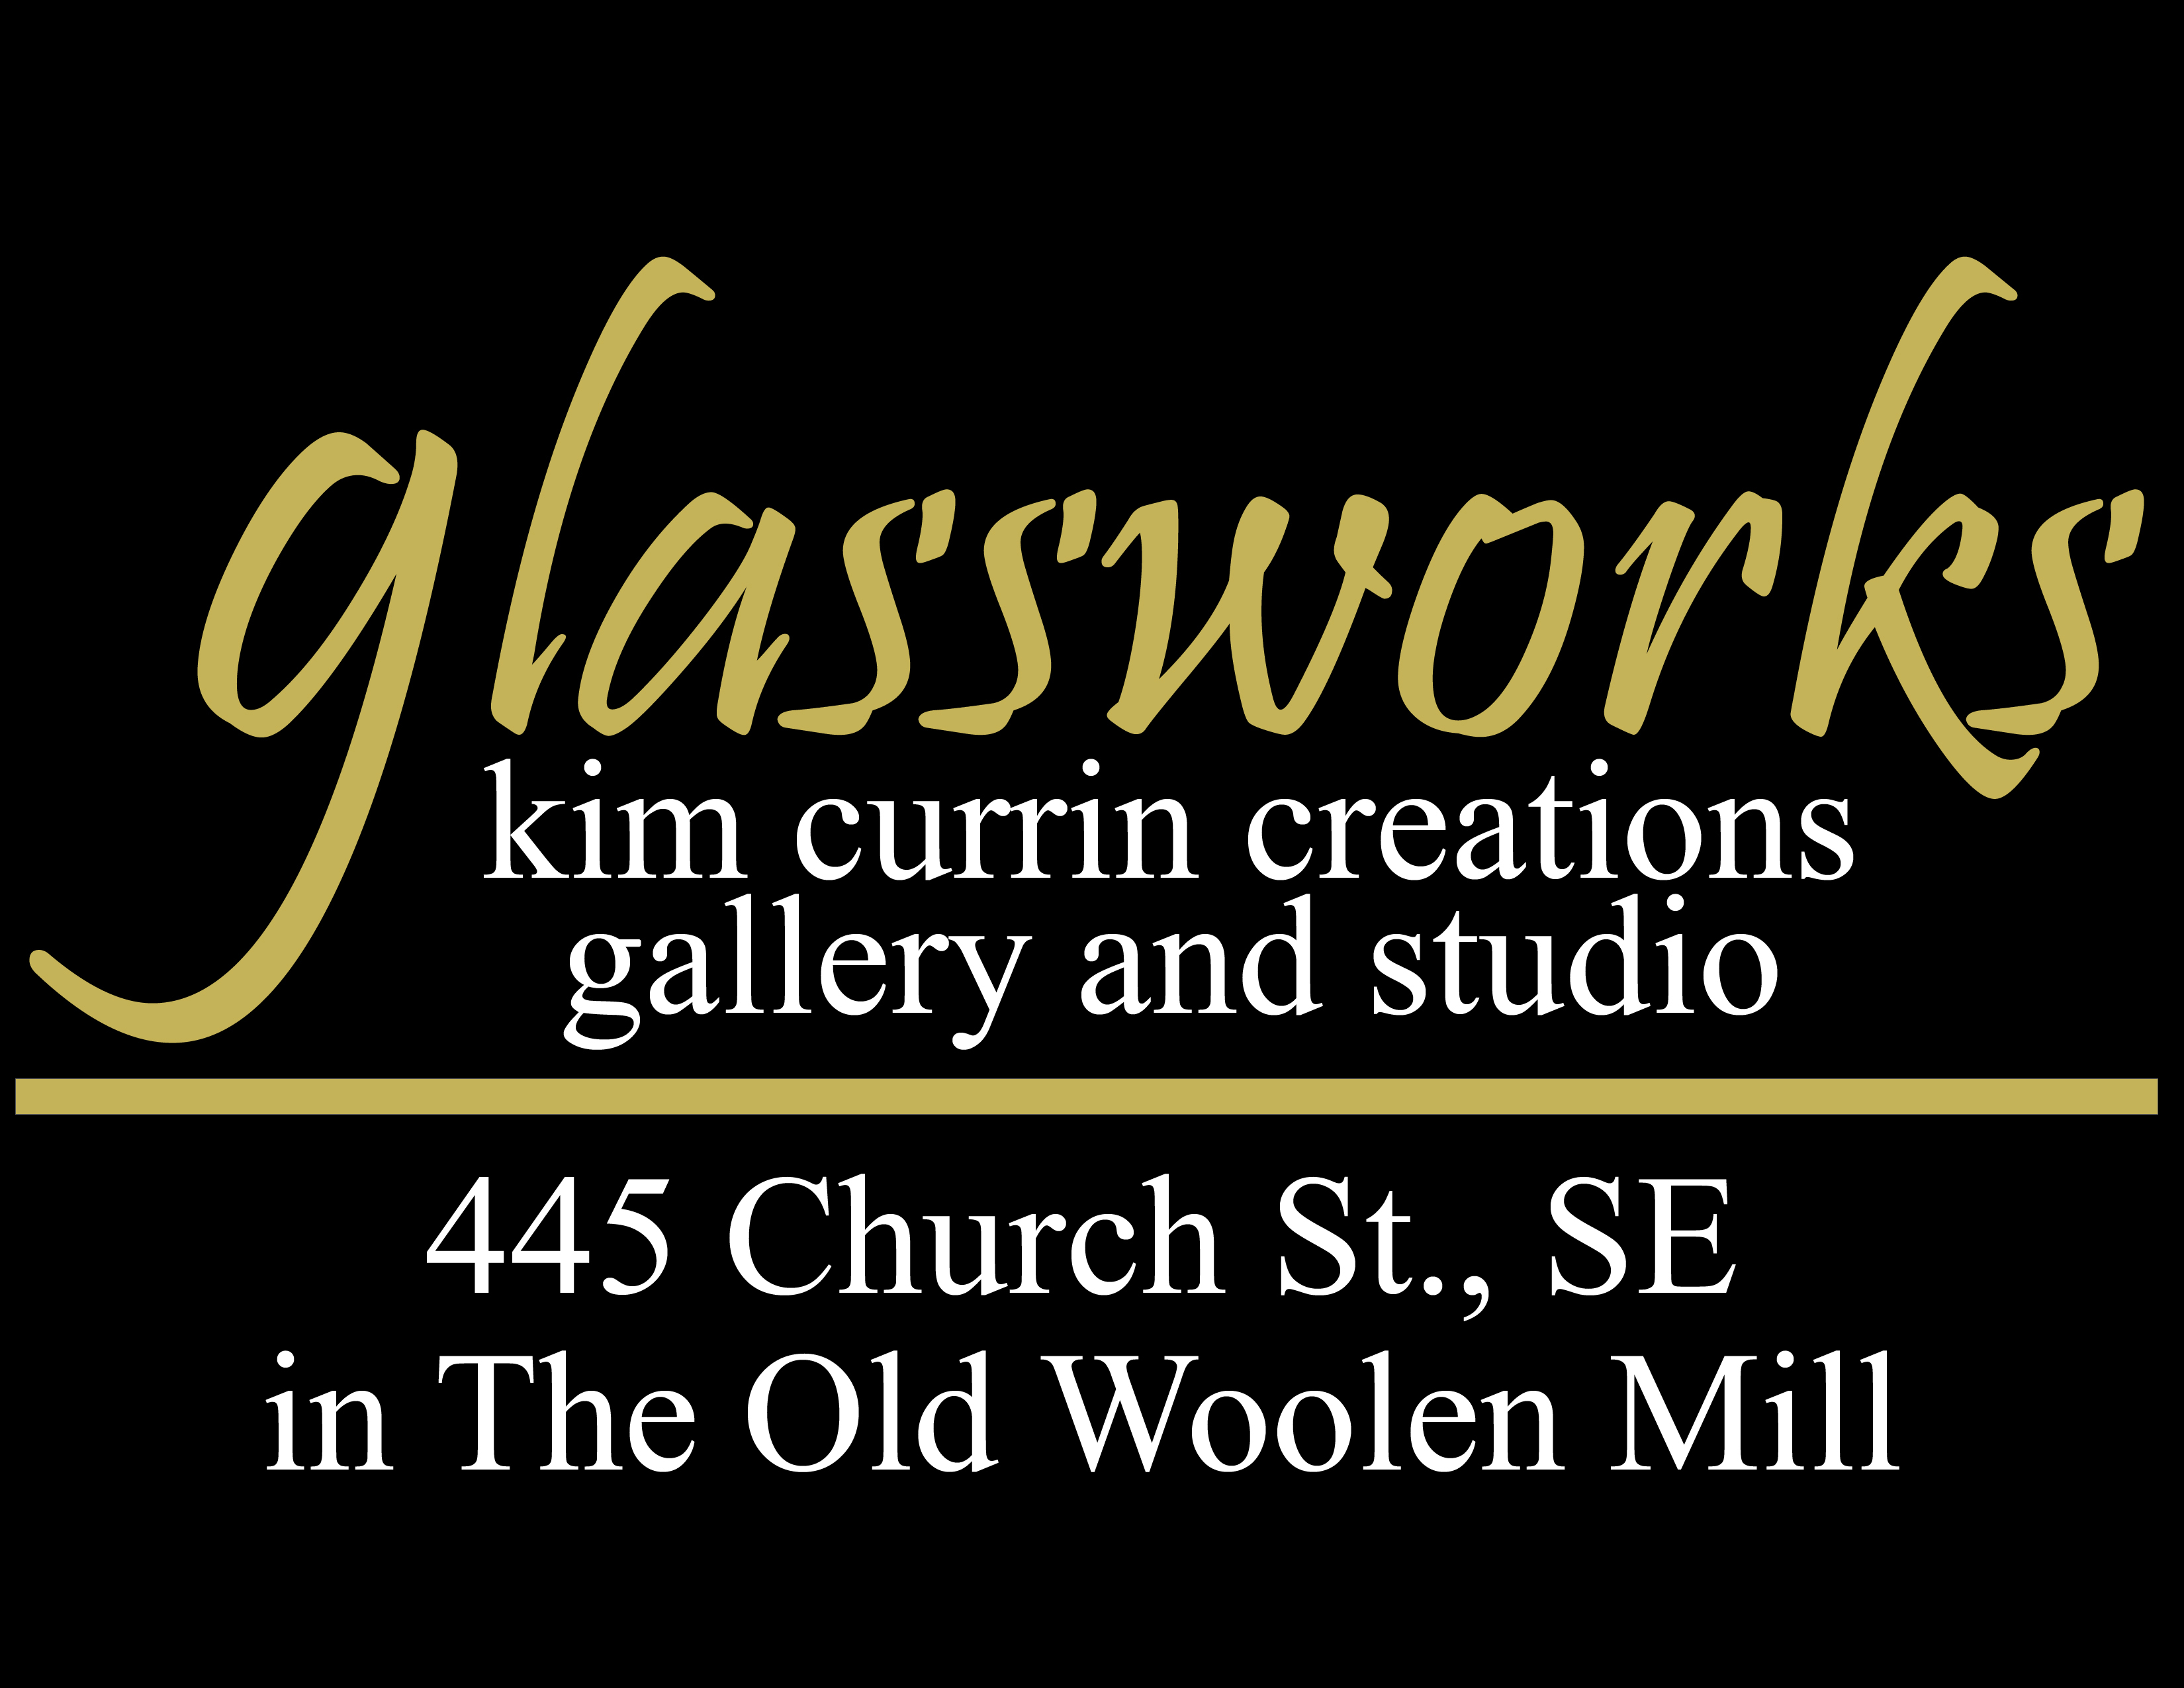 Glassworks Kim Currin Creations Gallery and Studio 445 Church Street SE in the Old Woolen Mill